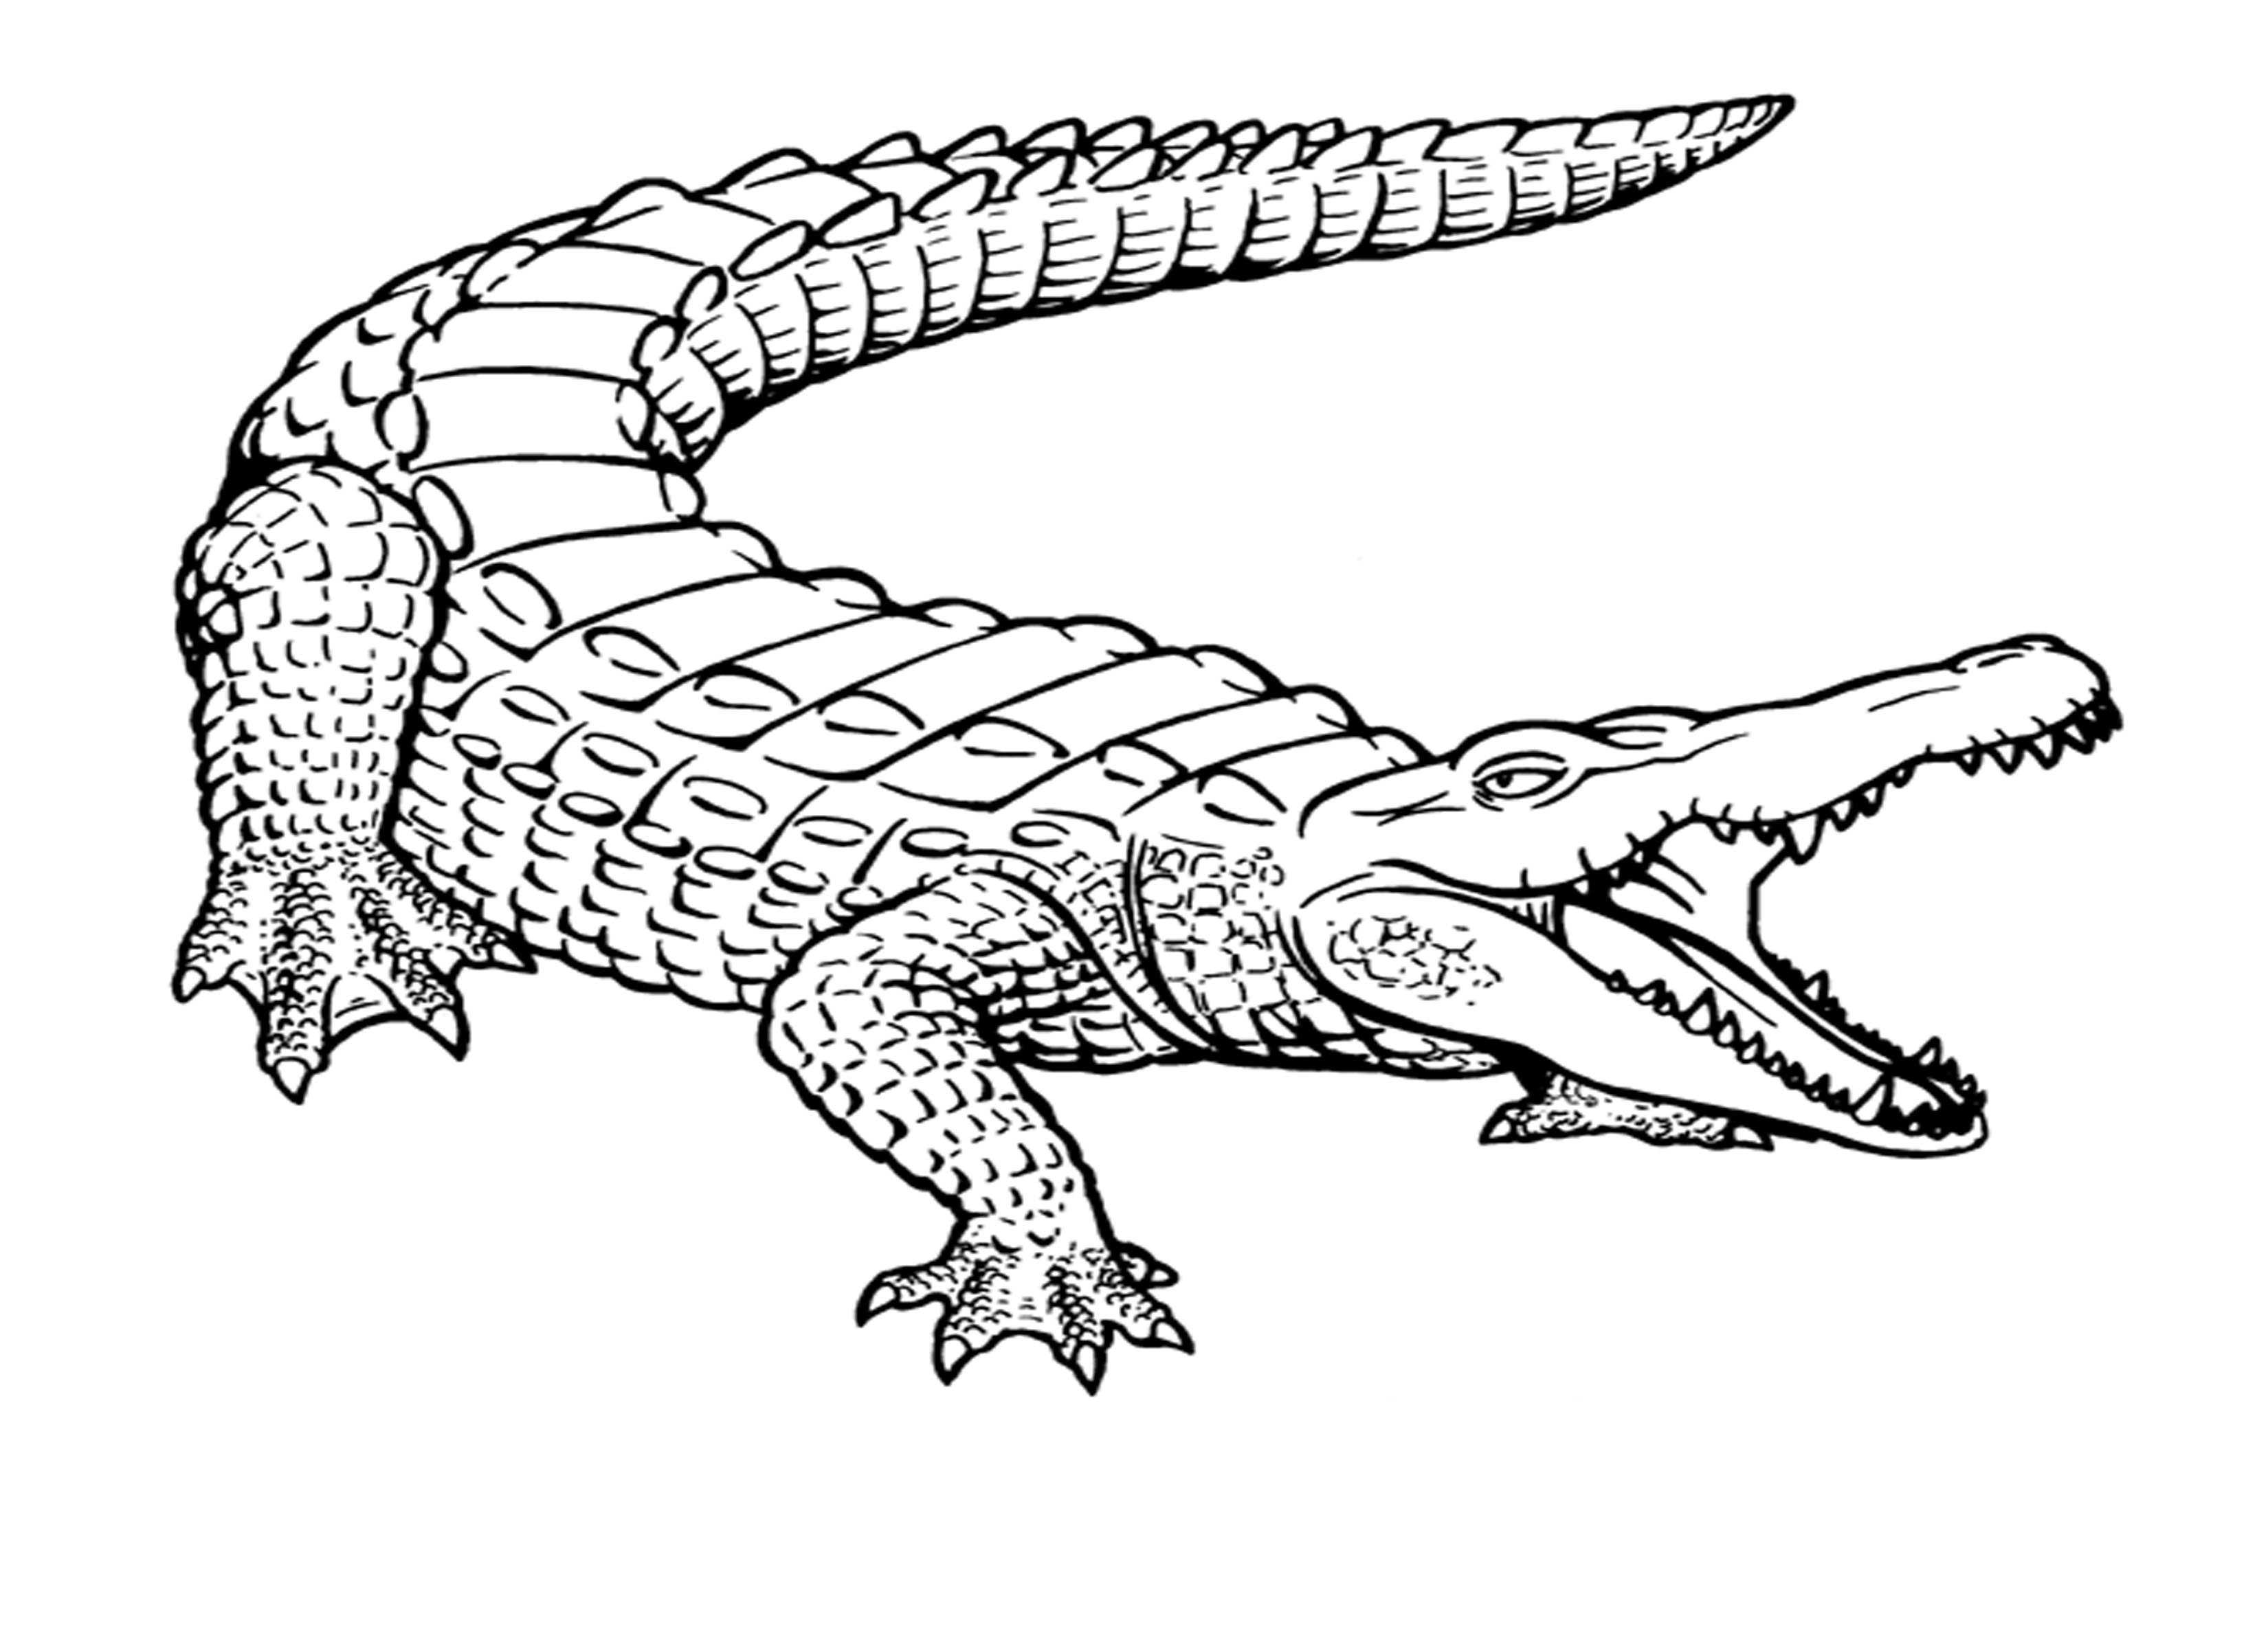 crocodile pictures to color free alligator coloring pages at getdrawings free download crocodile color to pictures